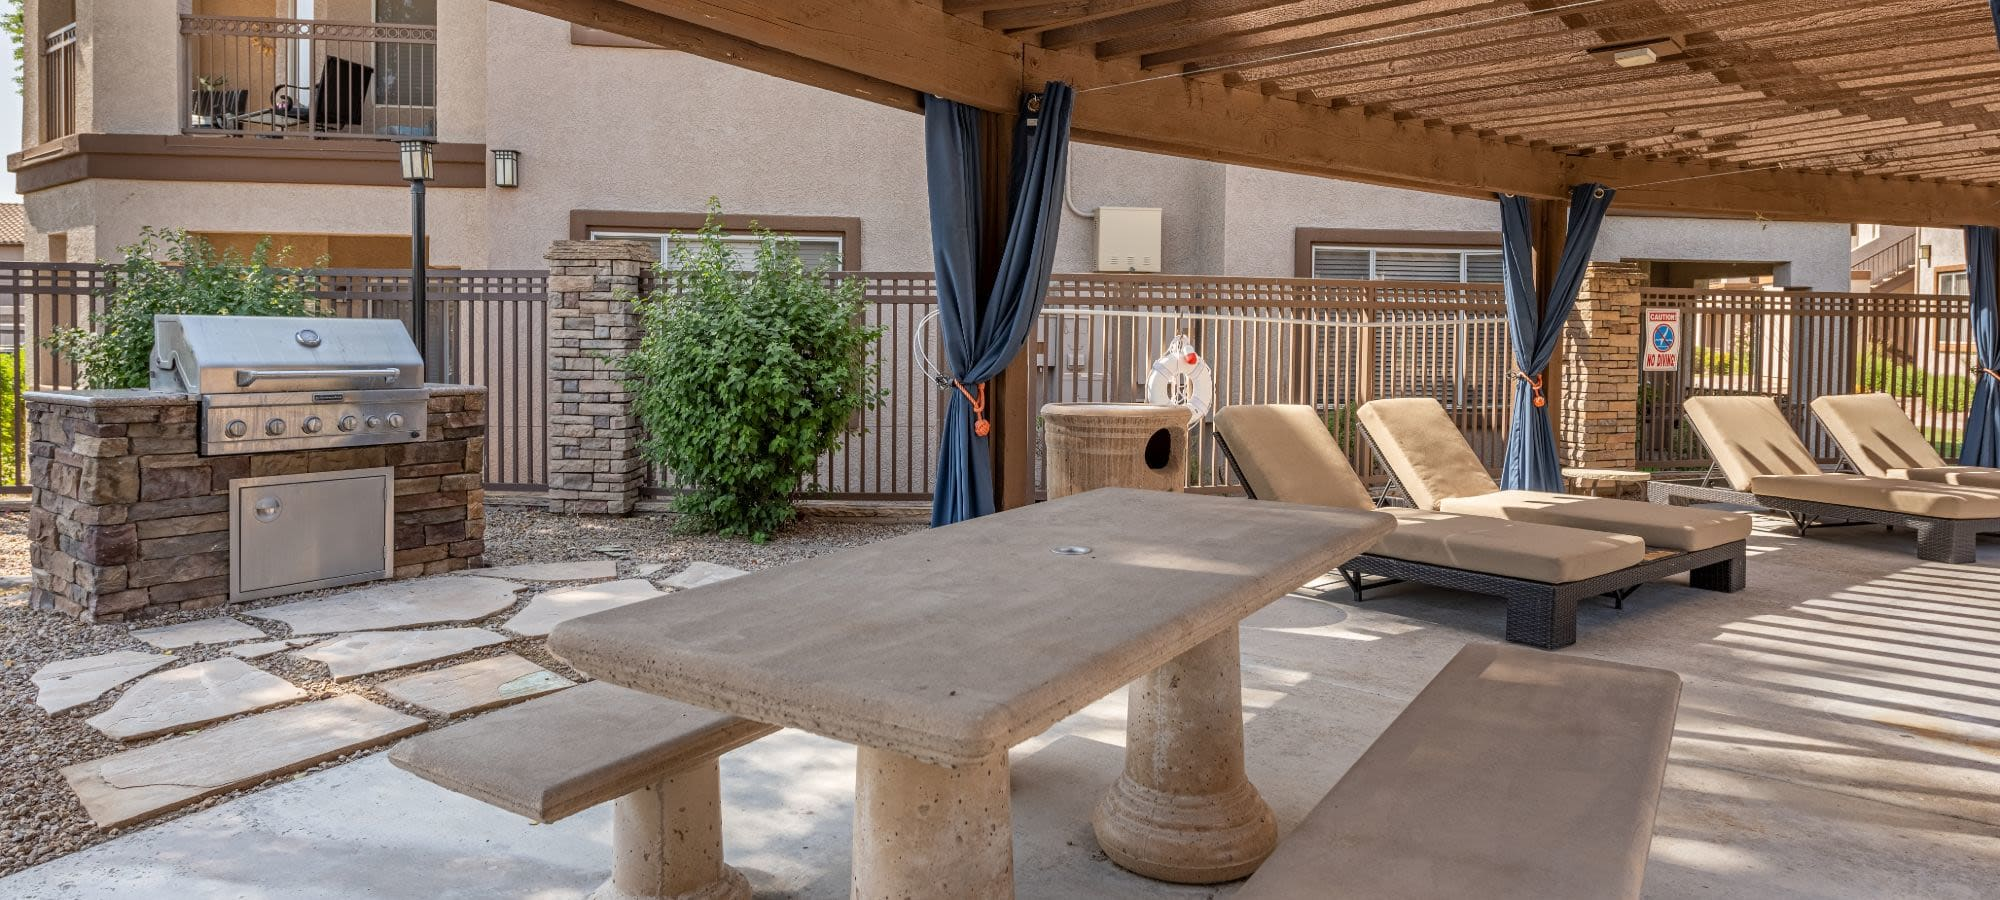 Connect with Azure Creek in Cave Creek, Arizona